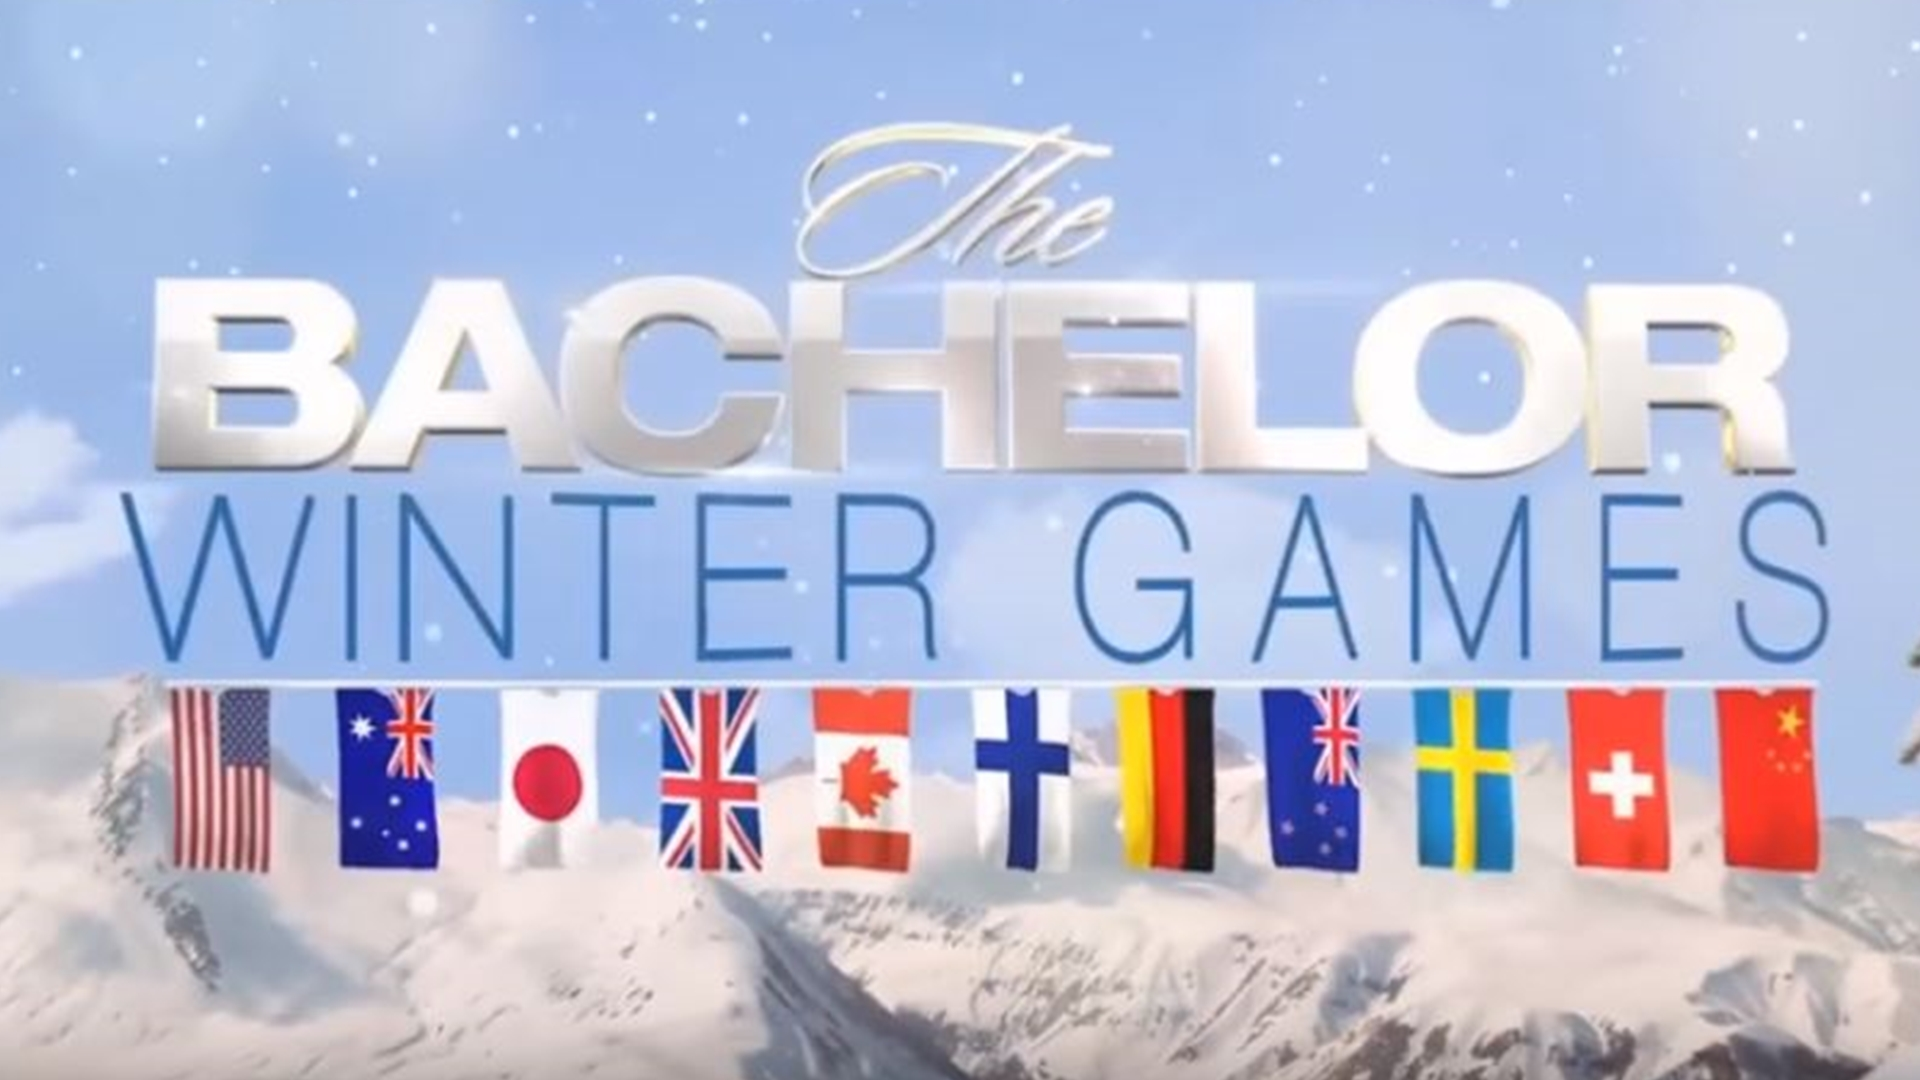 'Bachelor Winter Games' is popular and far too short